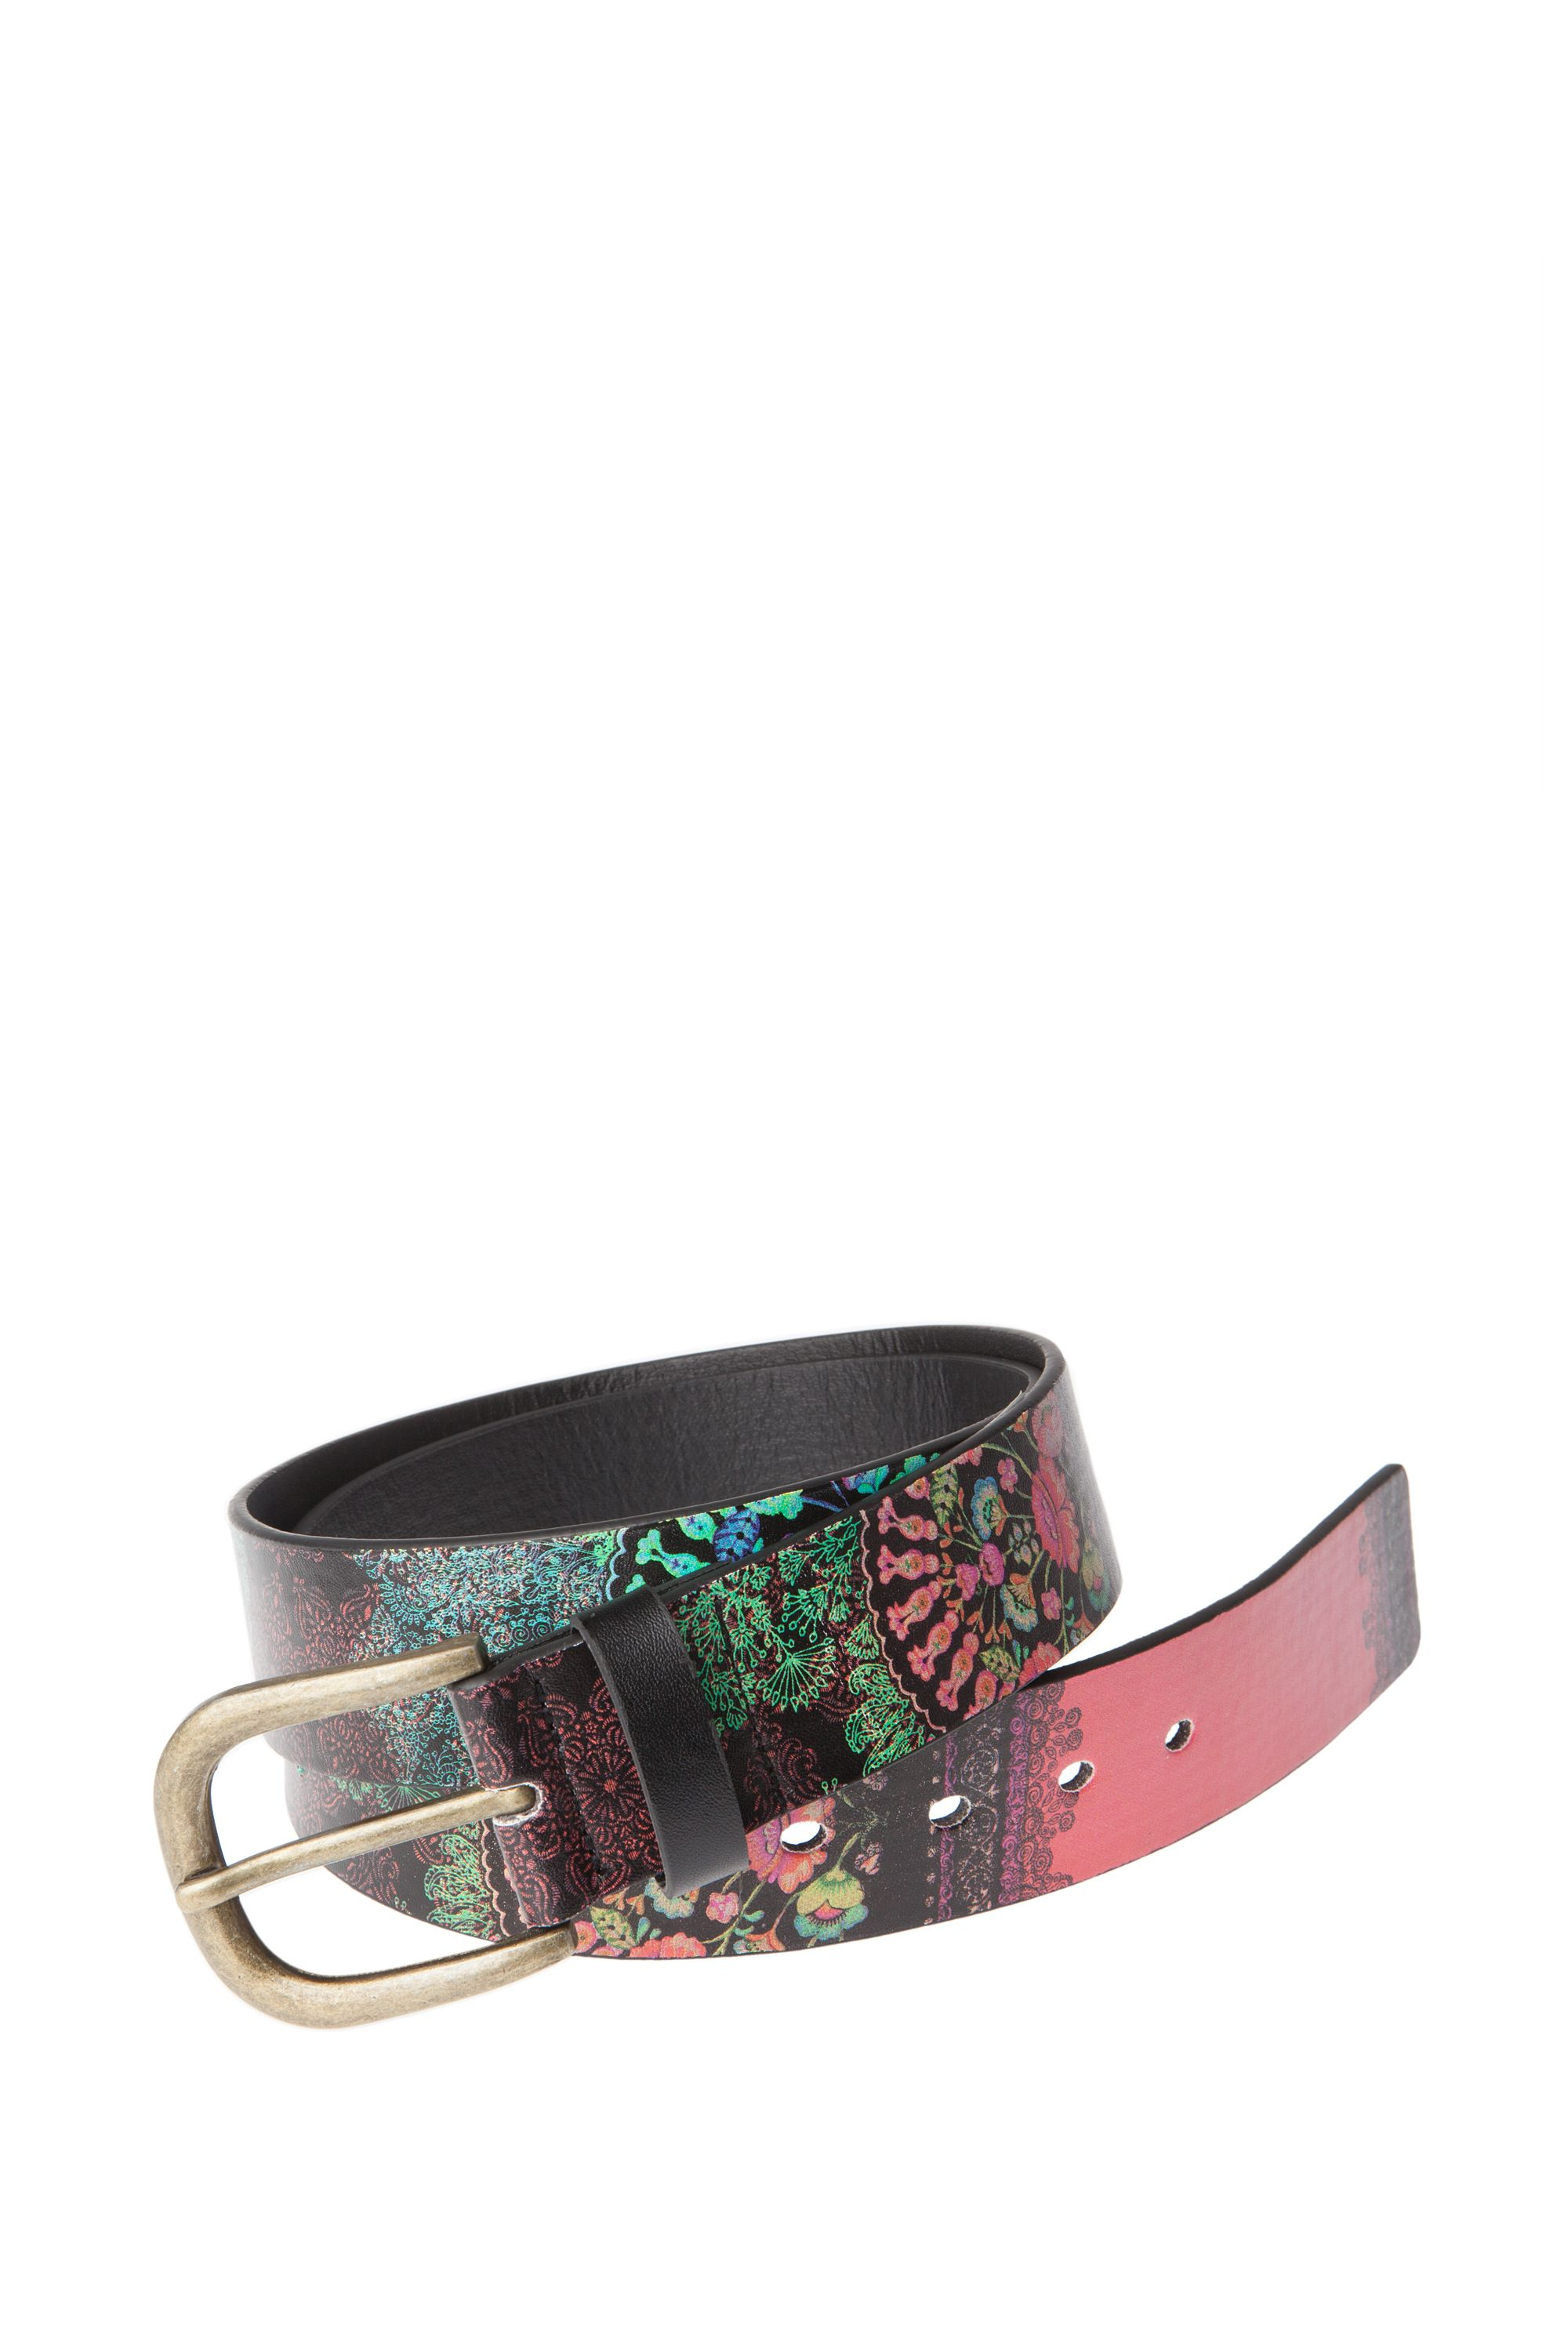 Mexico printed belt